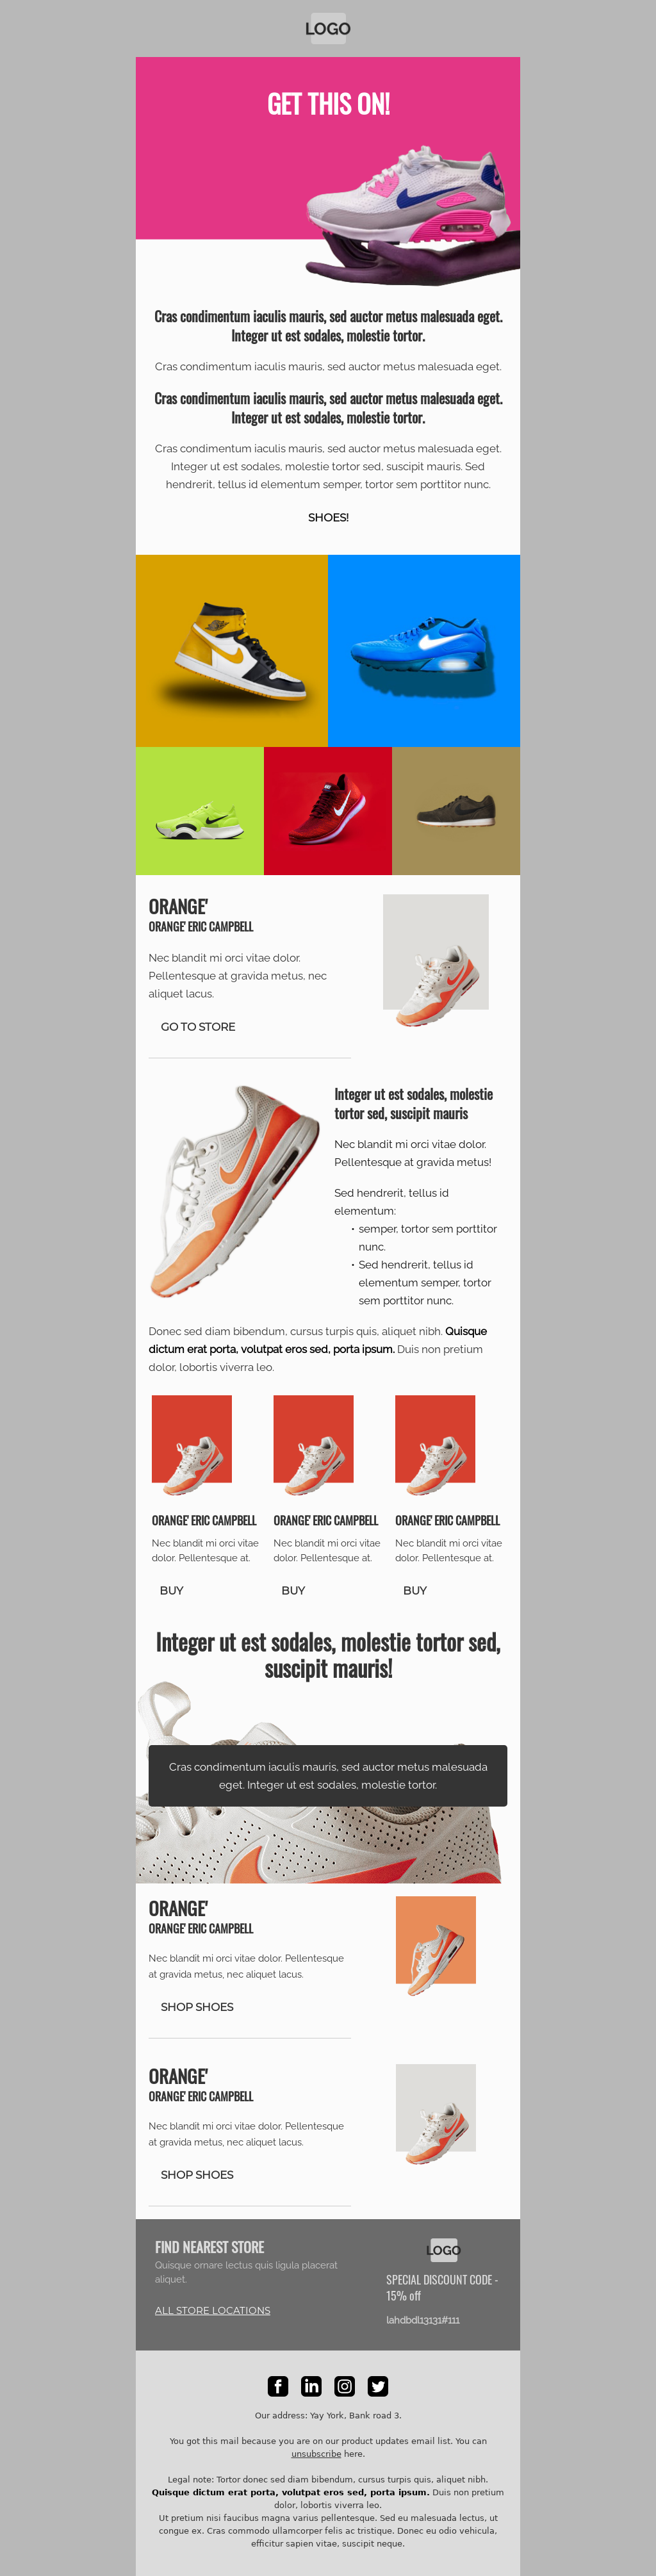 Shoes! Ecommerce Email Template for Marketo